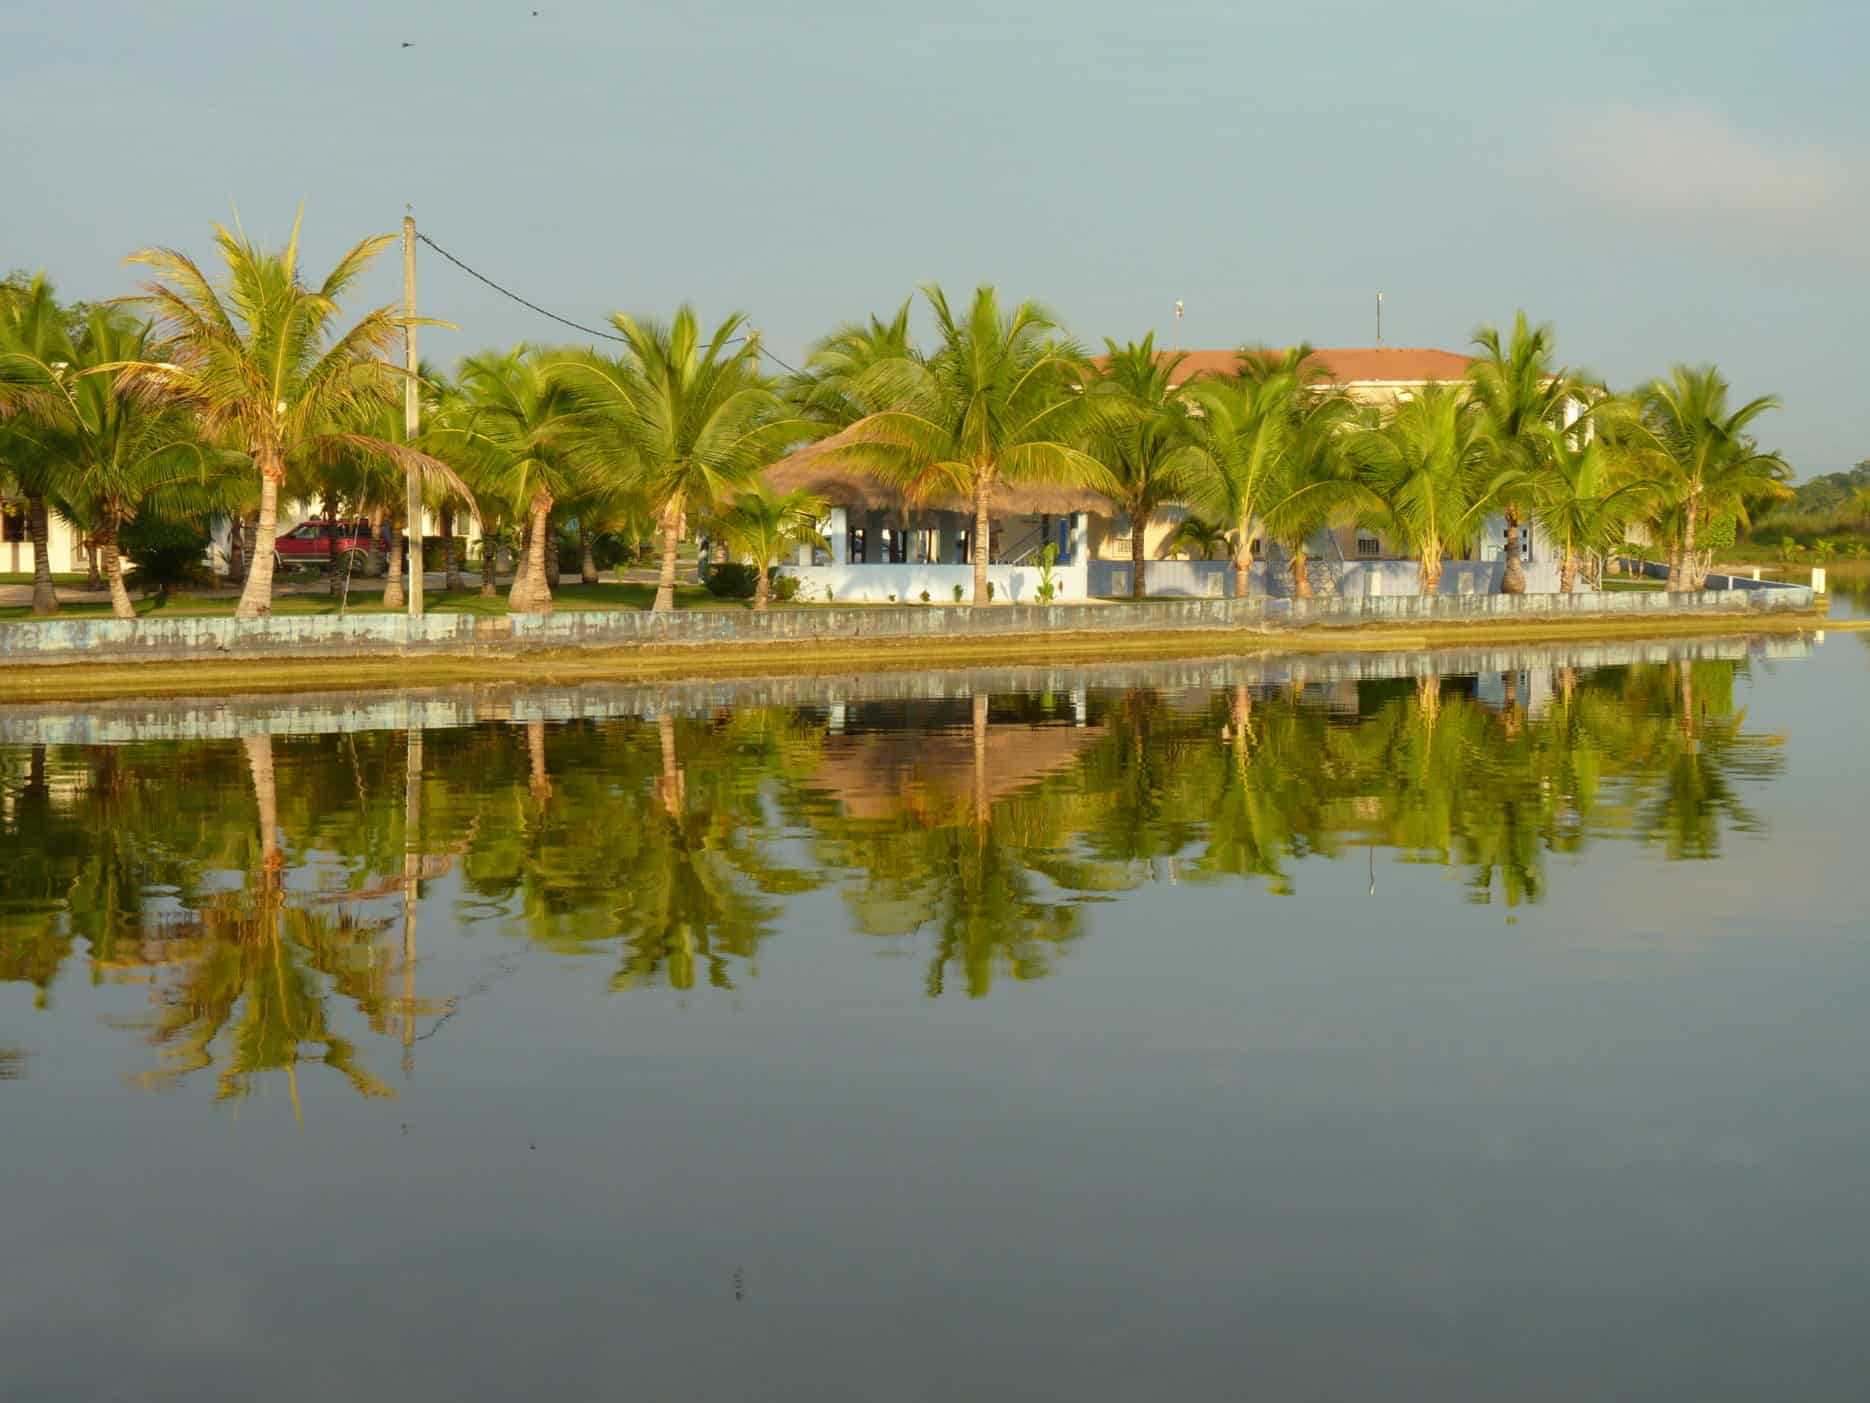 Spending lazy days in Corozal, Belize